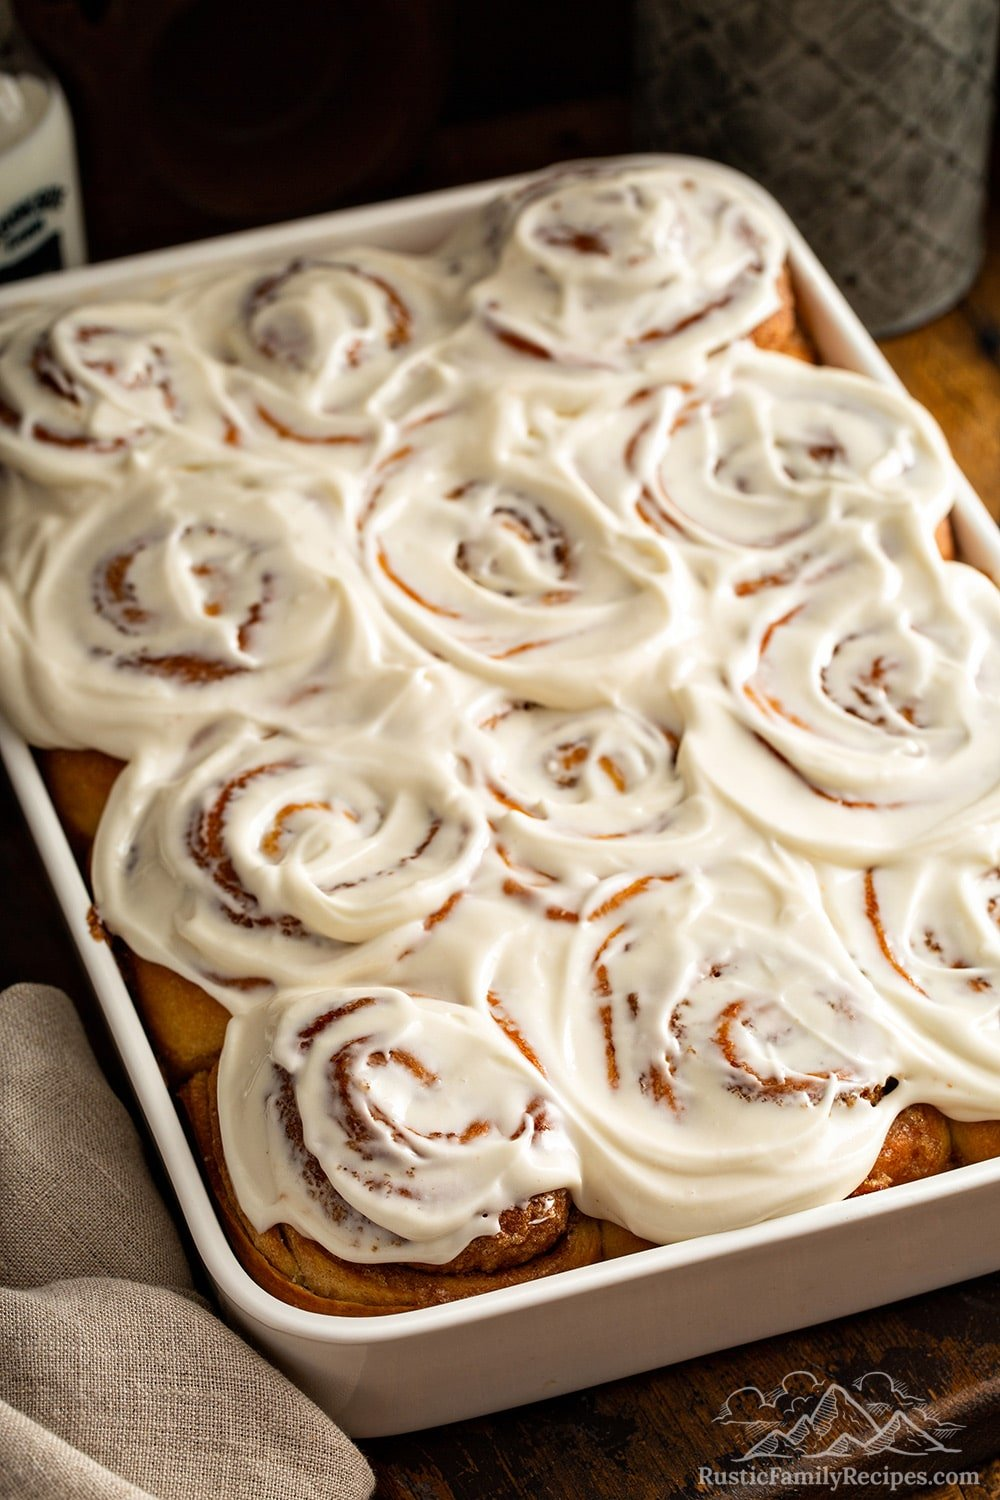 A white baking dish filled with frosted cinnamon buns.